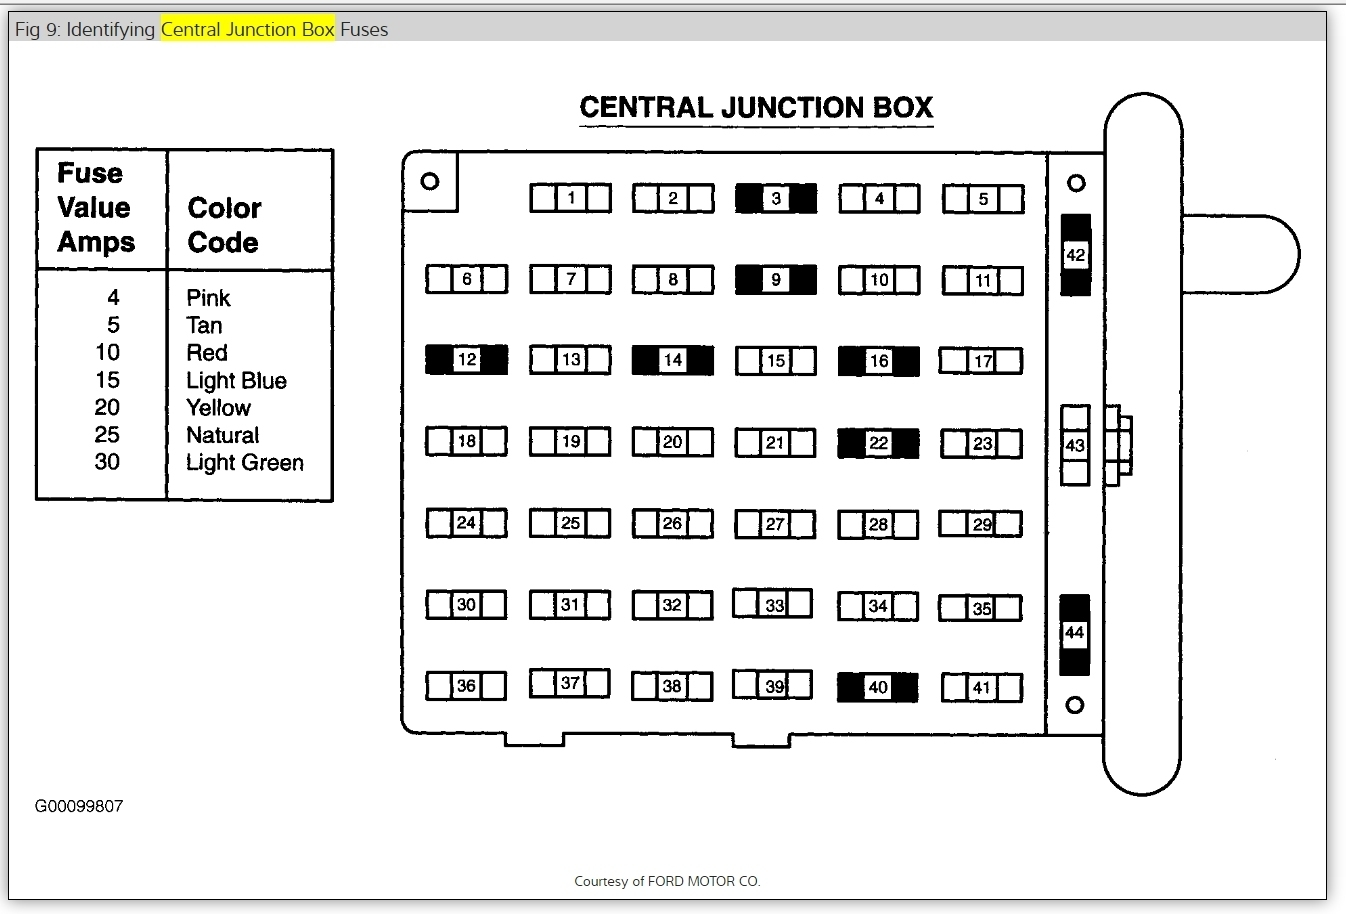 original 1999 ford mustang fuse box layout electrical problem 1999 ford mustang fuse box at cos-gaming.co